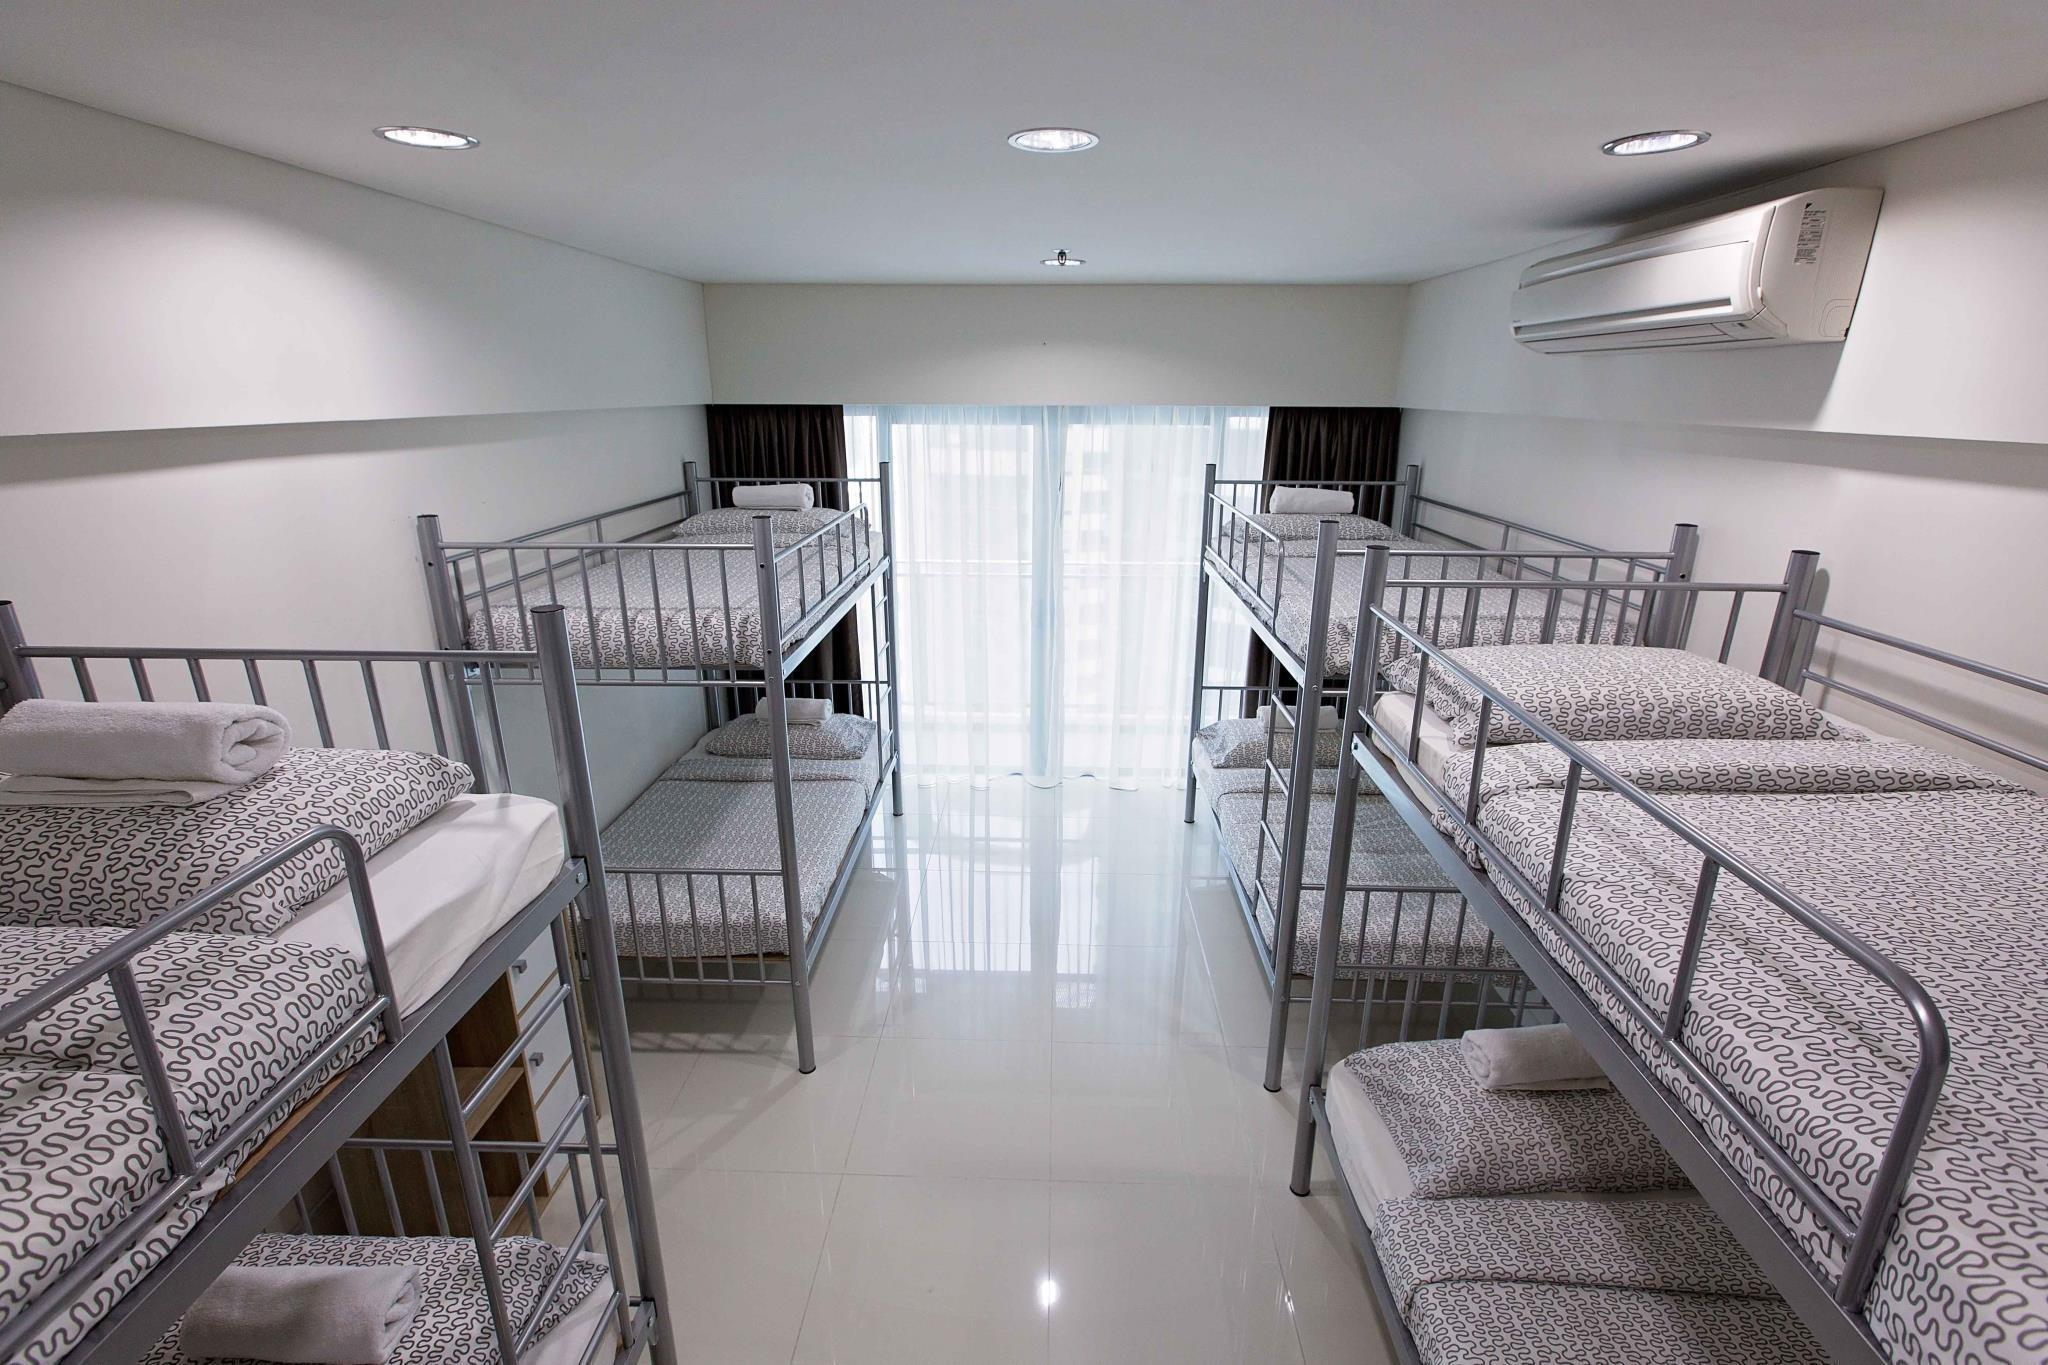 2 People in 12-Bed Dormitory - Female Only